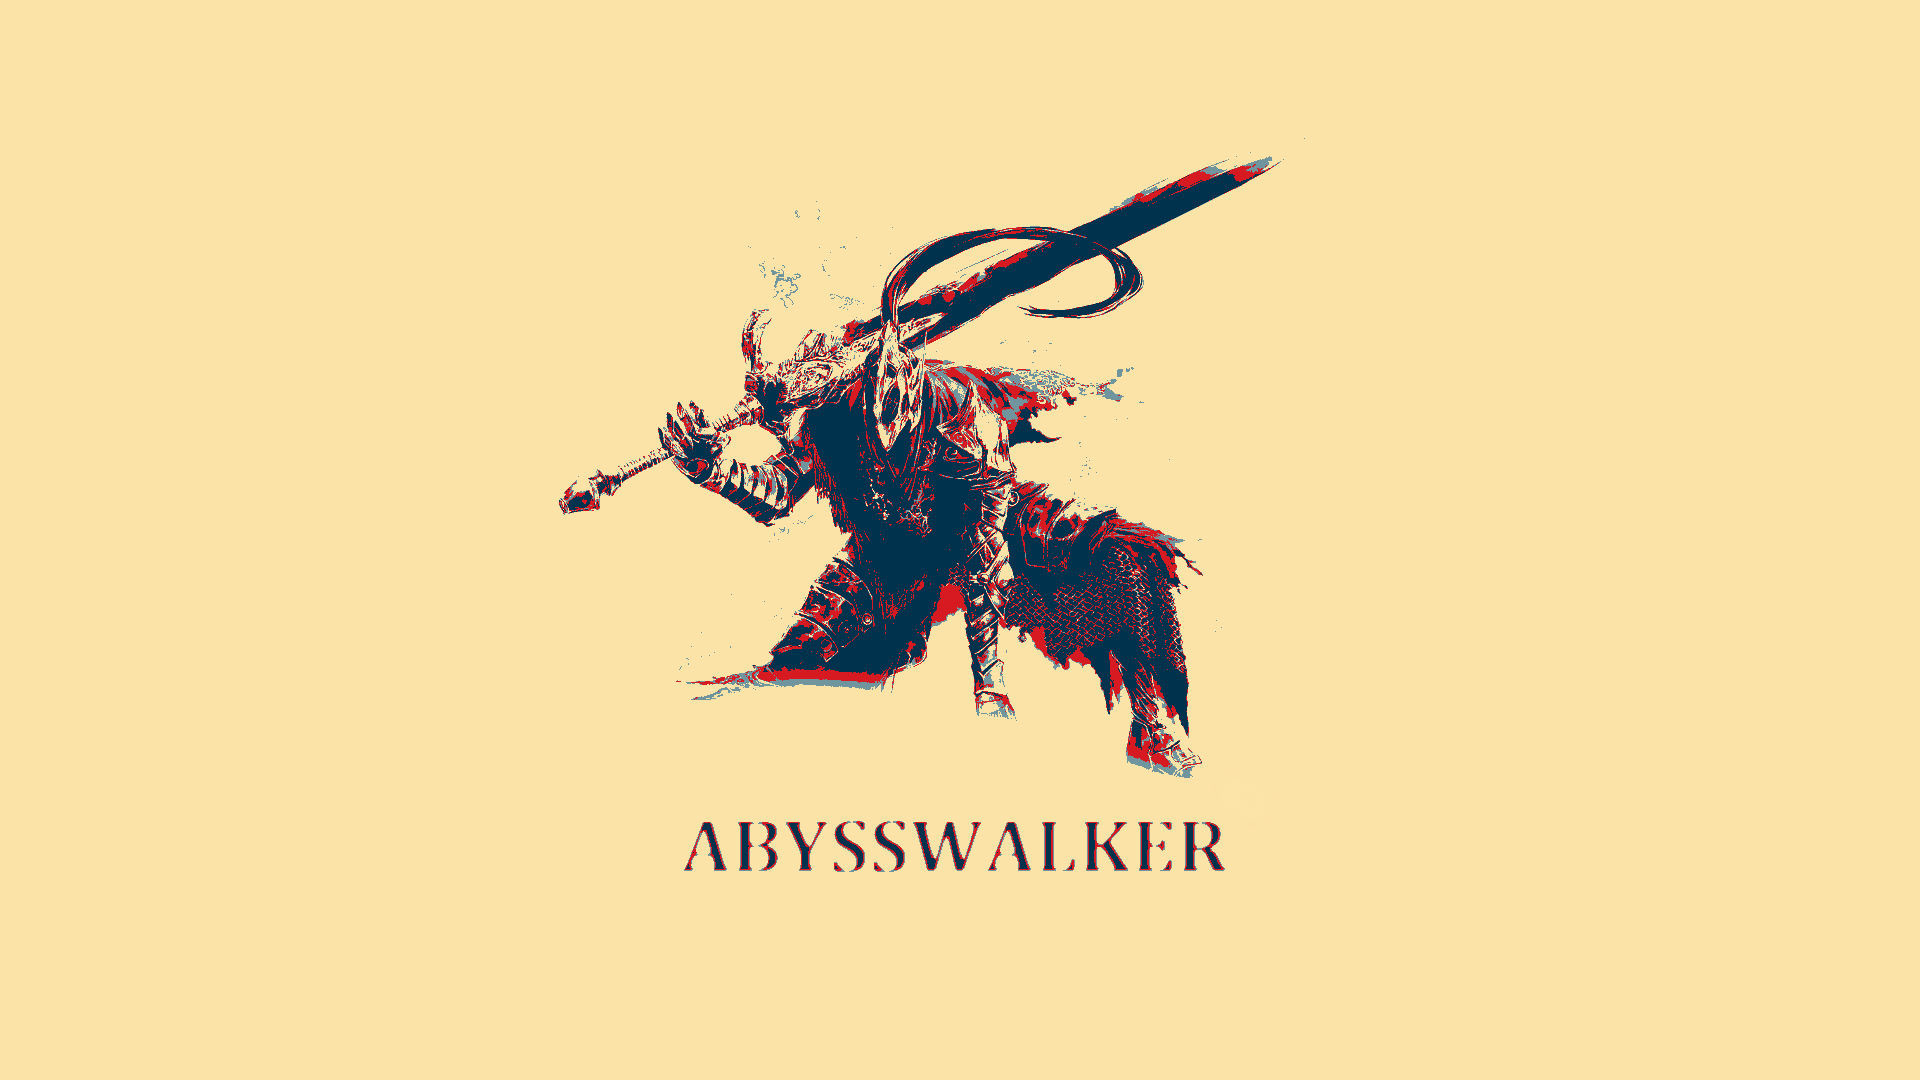 Abysswalker Dark Souls Wallpaper